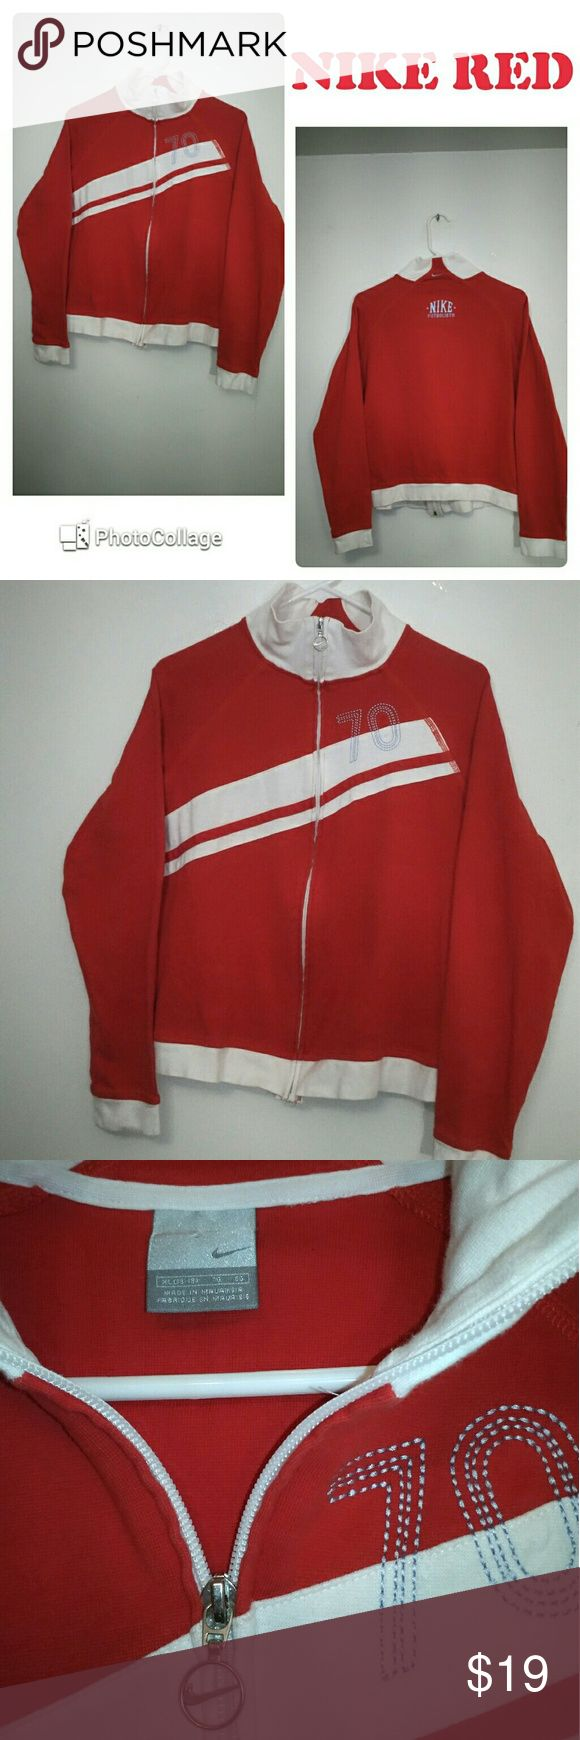 Nike Red Futbol Zip Up Jacket XL Petite In good condition, no rips, no holes nor stains Nike Zip Up Jacket Futbolista in red and white color. XL size seems to be for petites. LENGTH: 22 inches. PIT TO PIT: 22.5 inches.Please check my pictures posted for details and if you have any questions, please feel free to ask and make offer. Nike Jackets & Coats